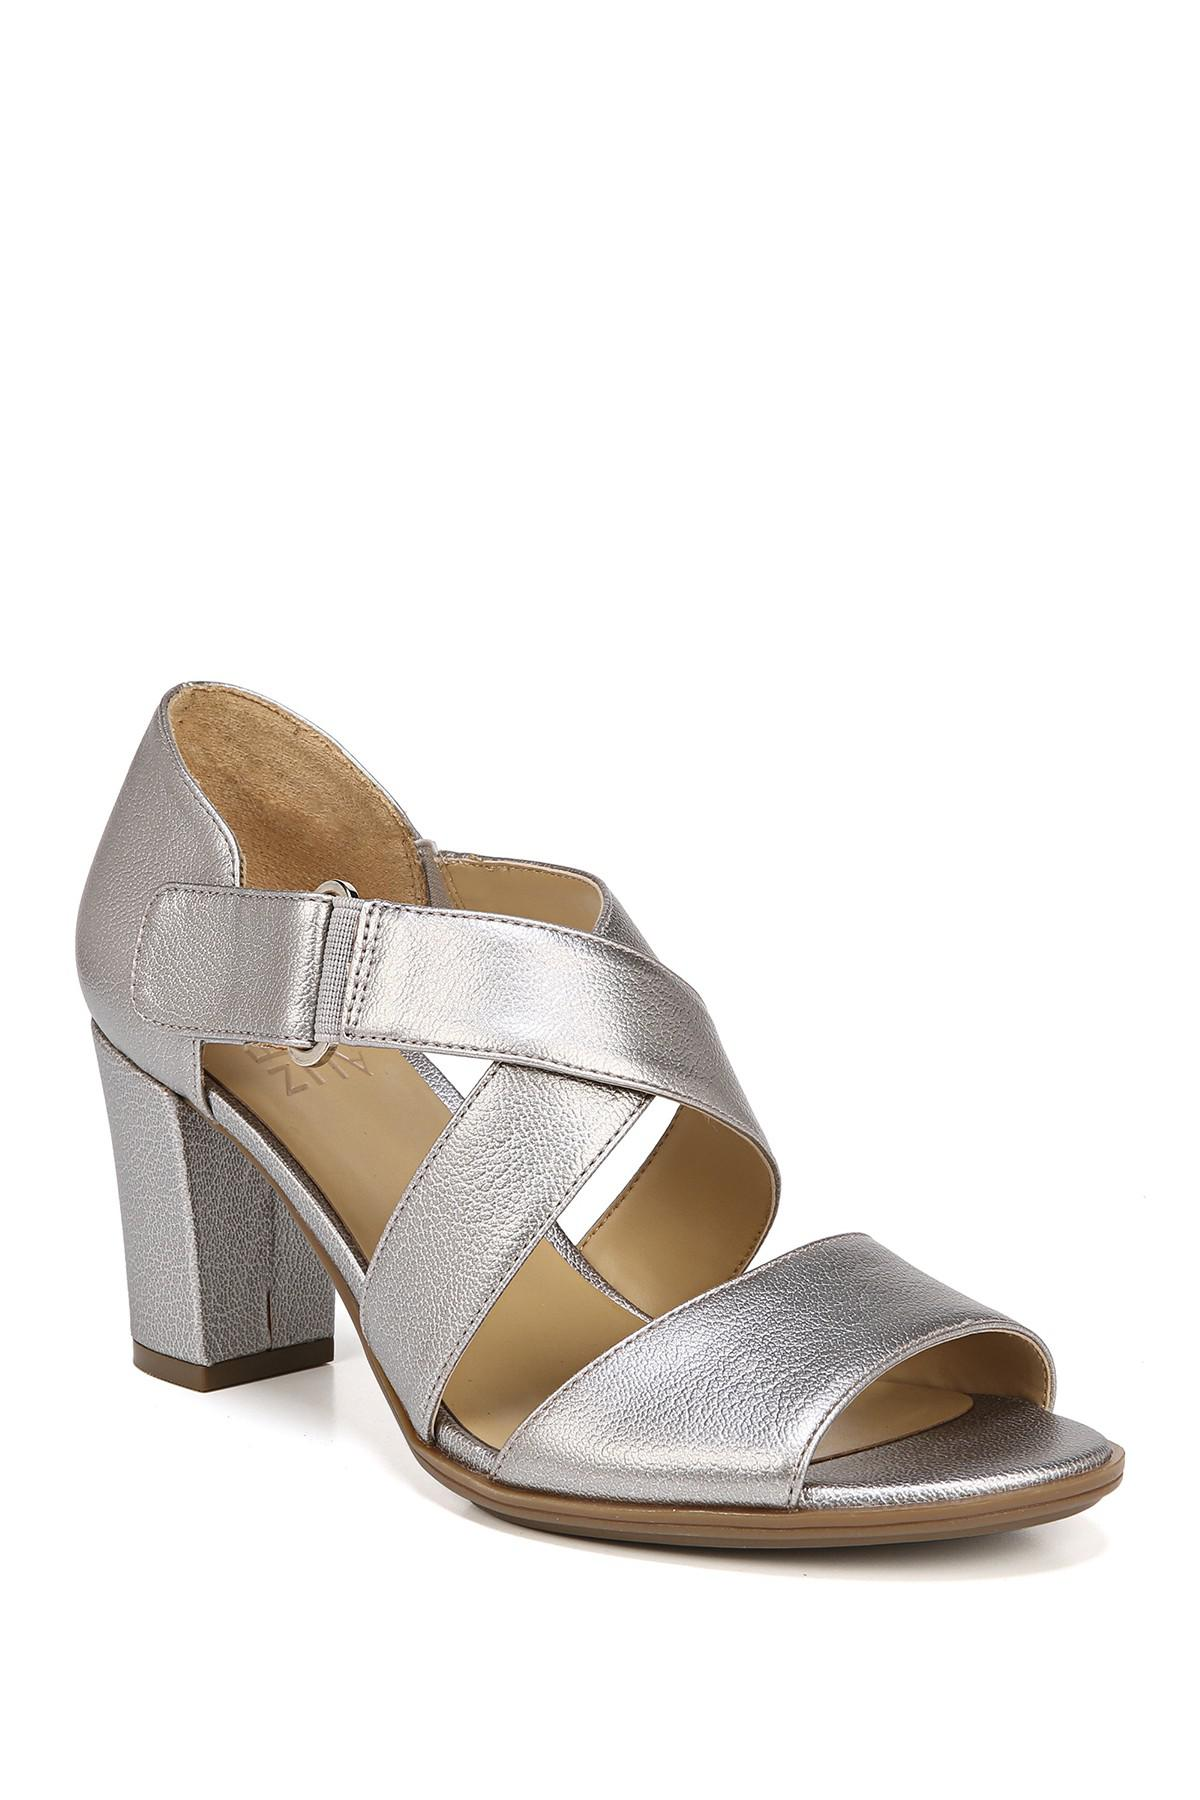 98c3d8735375 Lyst - Naturalizer Lindy Sandal - Wide Width Available in Metallic